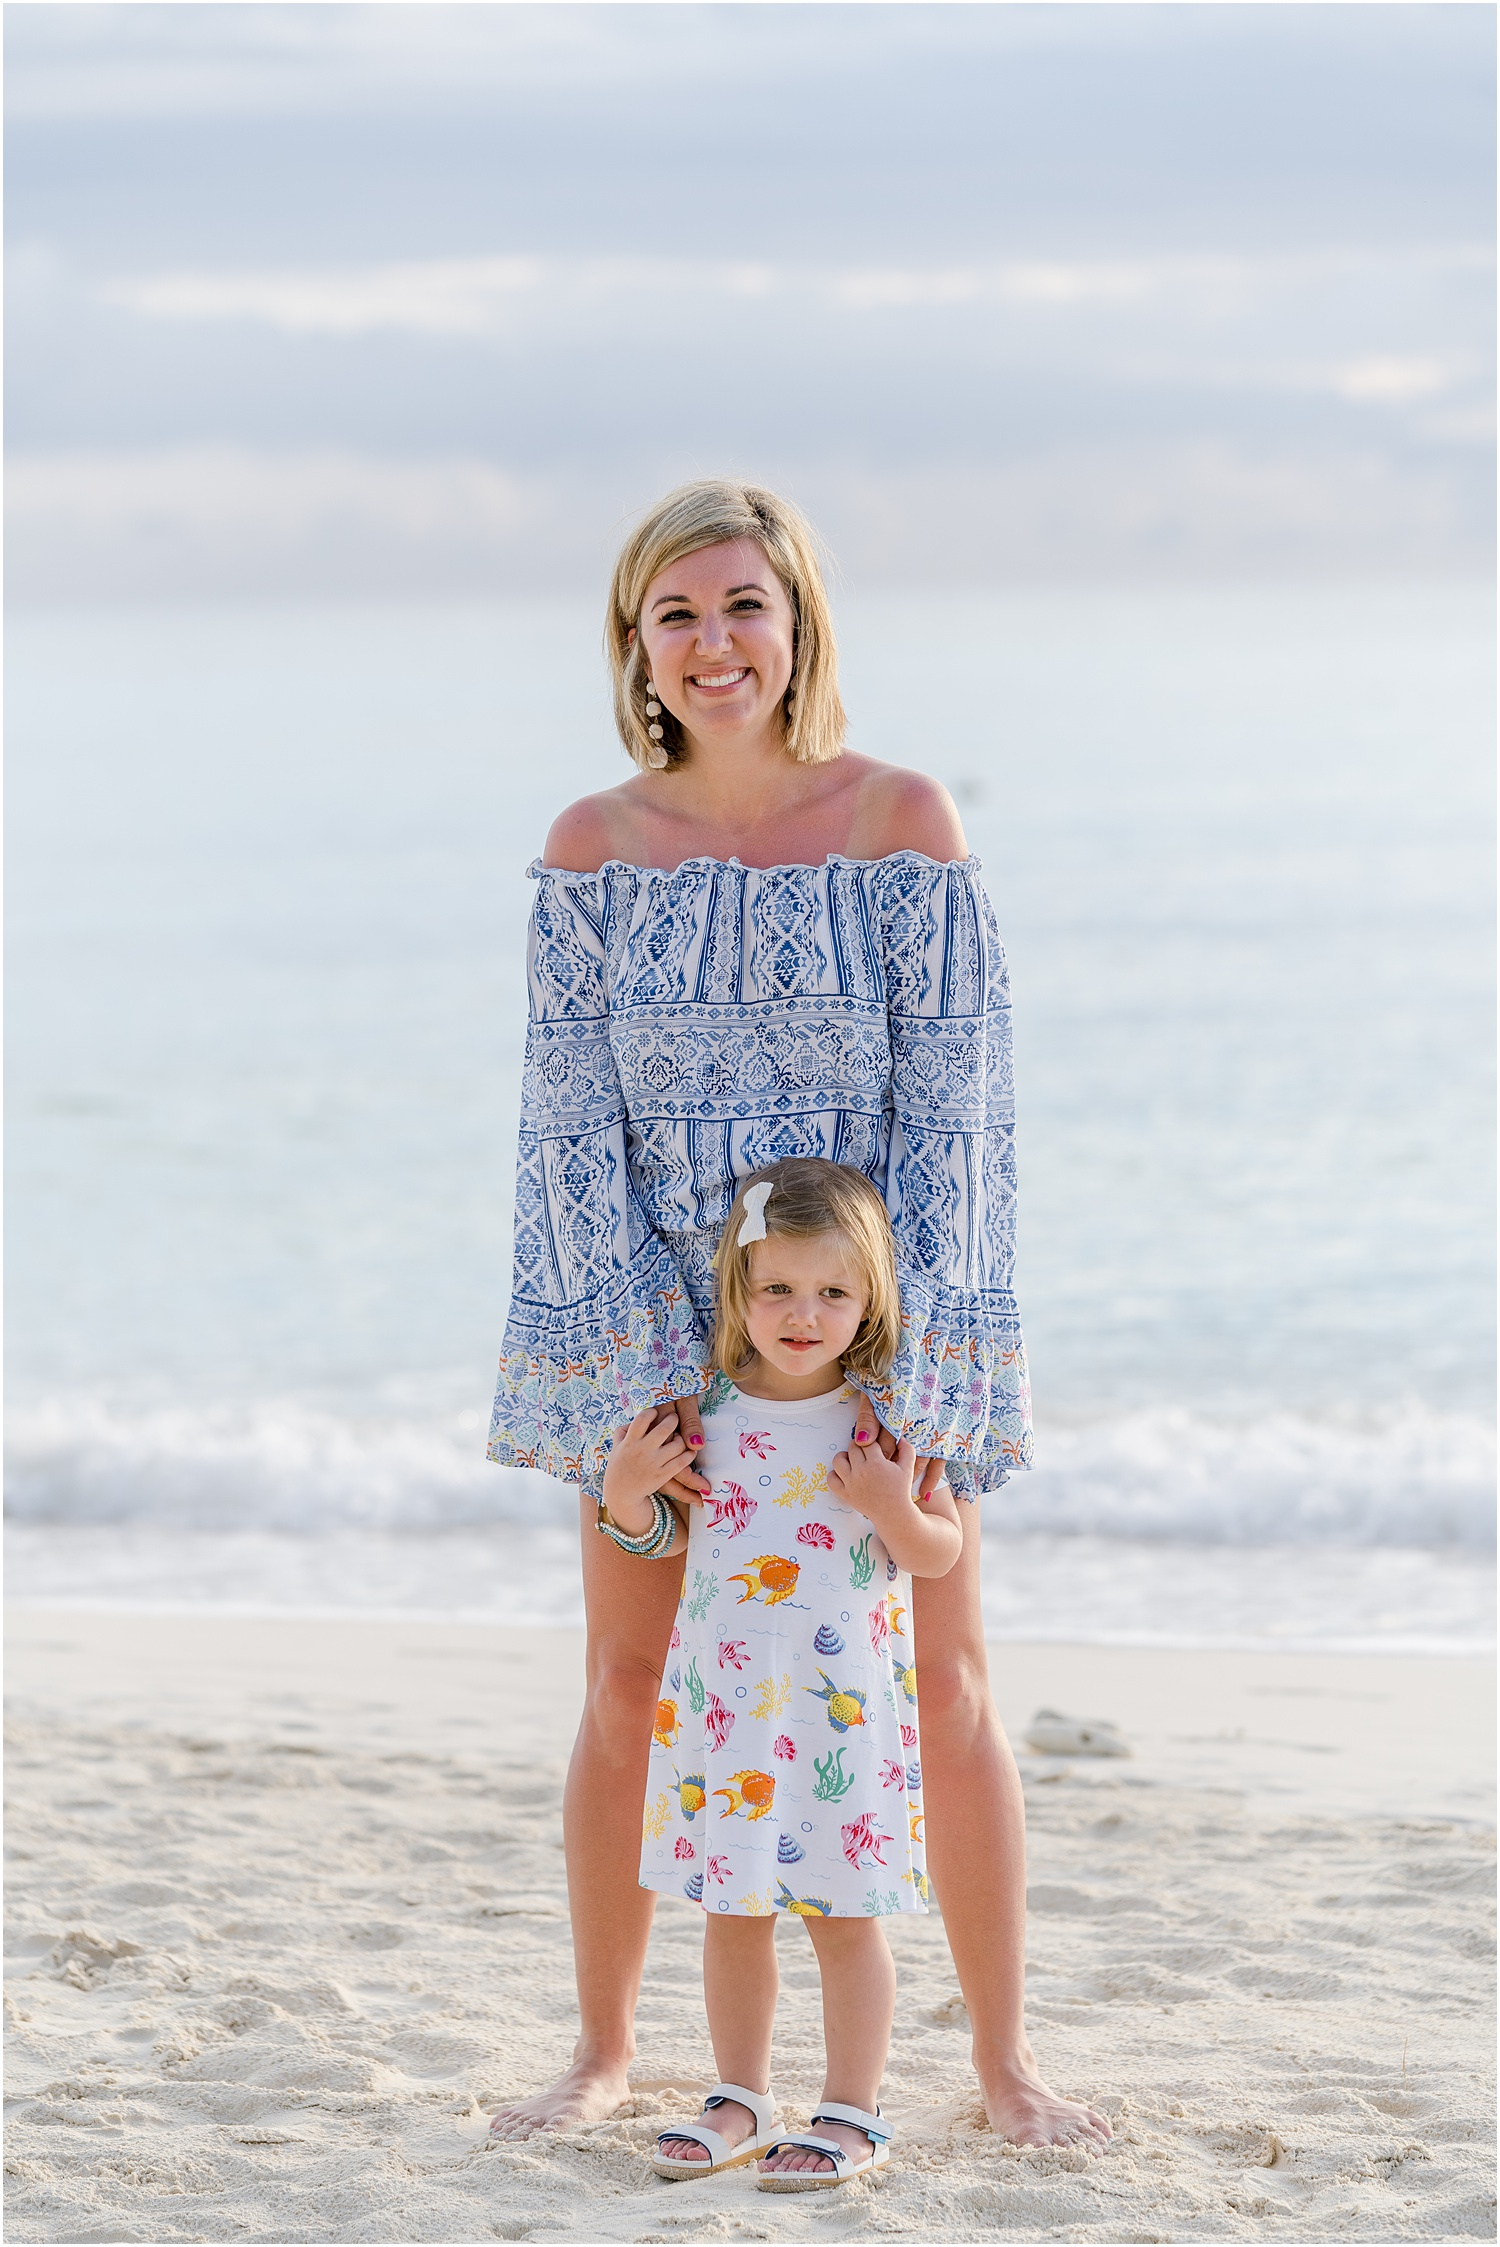 Mom, and daughter on beach. Blue and white outfits.